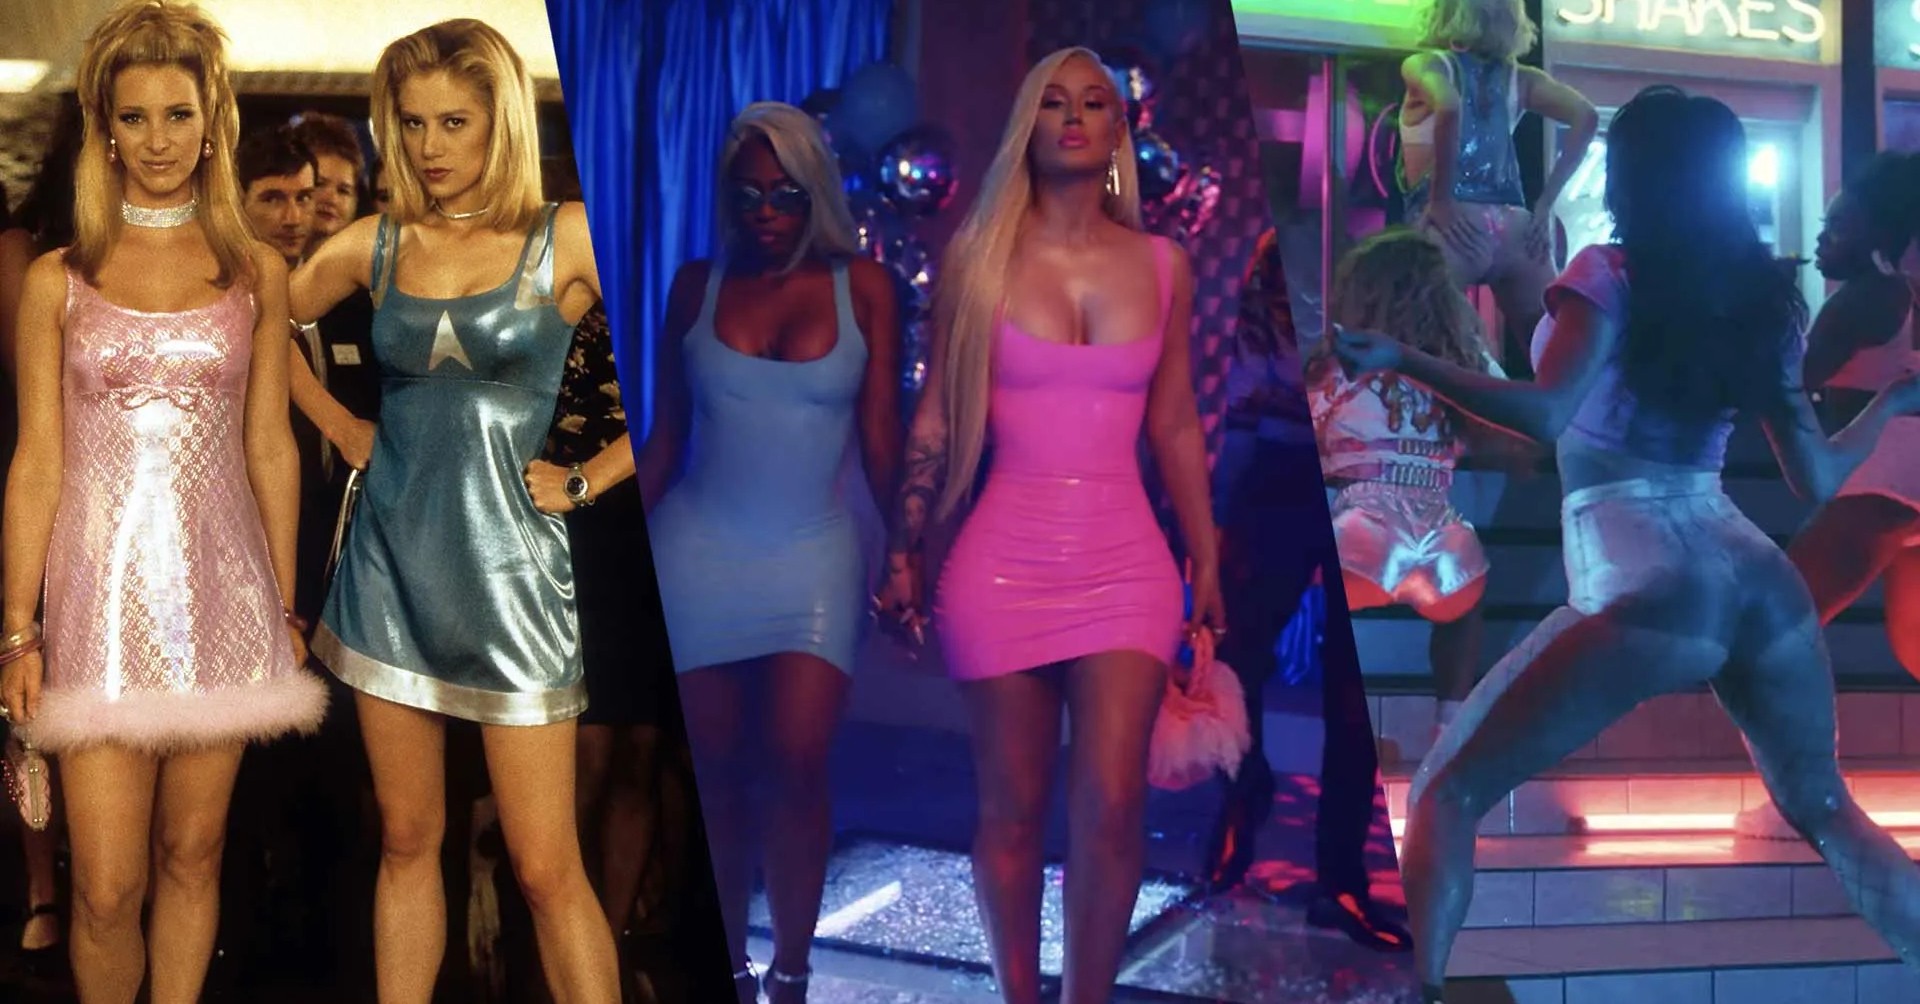 The Sexiest Scenes From Iggy Azalea's 'Romy and Michele' Themed Music Video